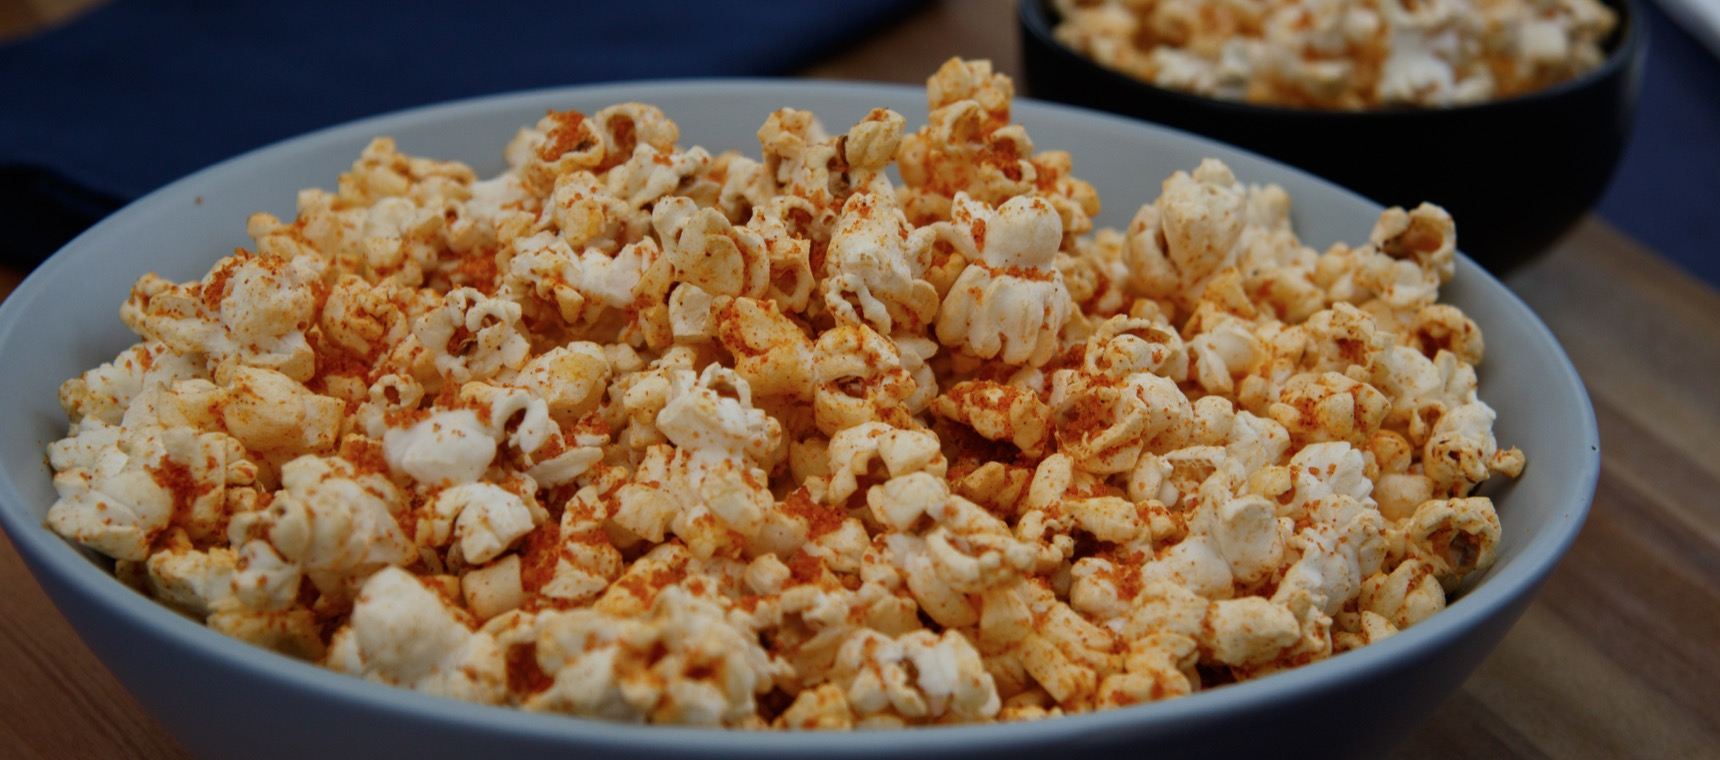 Savoury Seasoned Popcorn